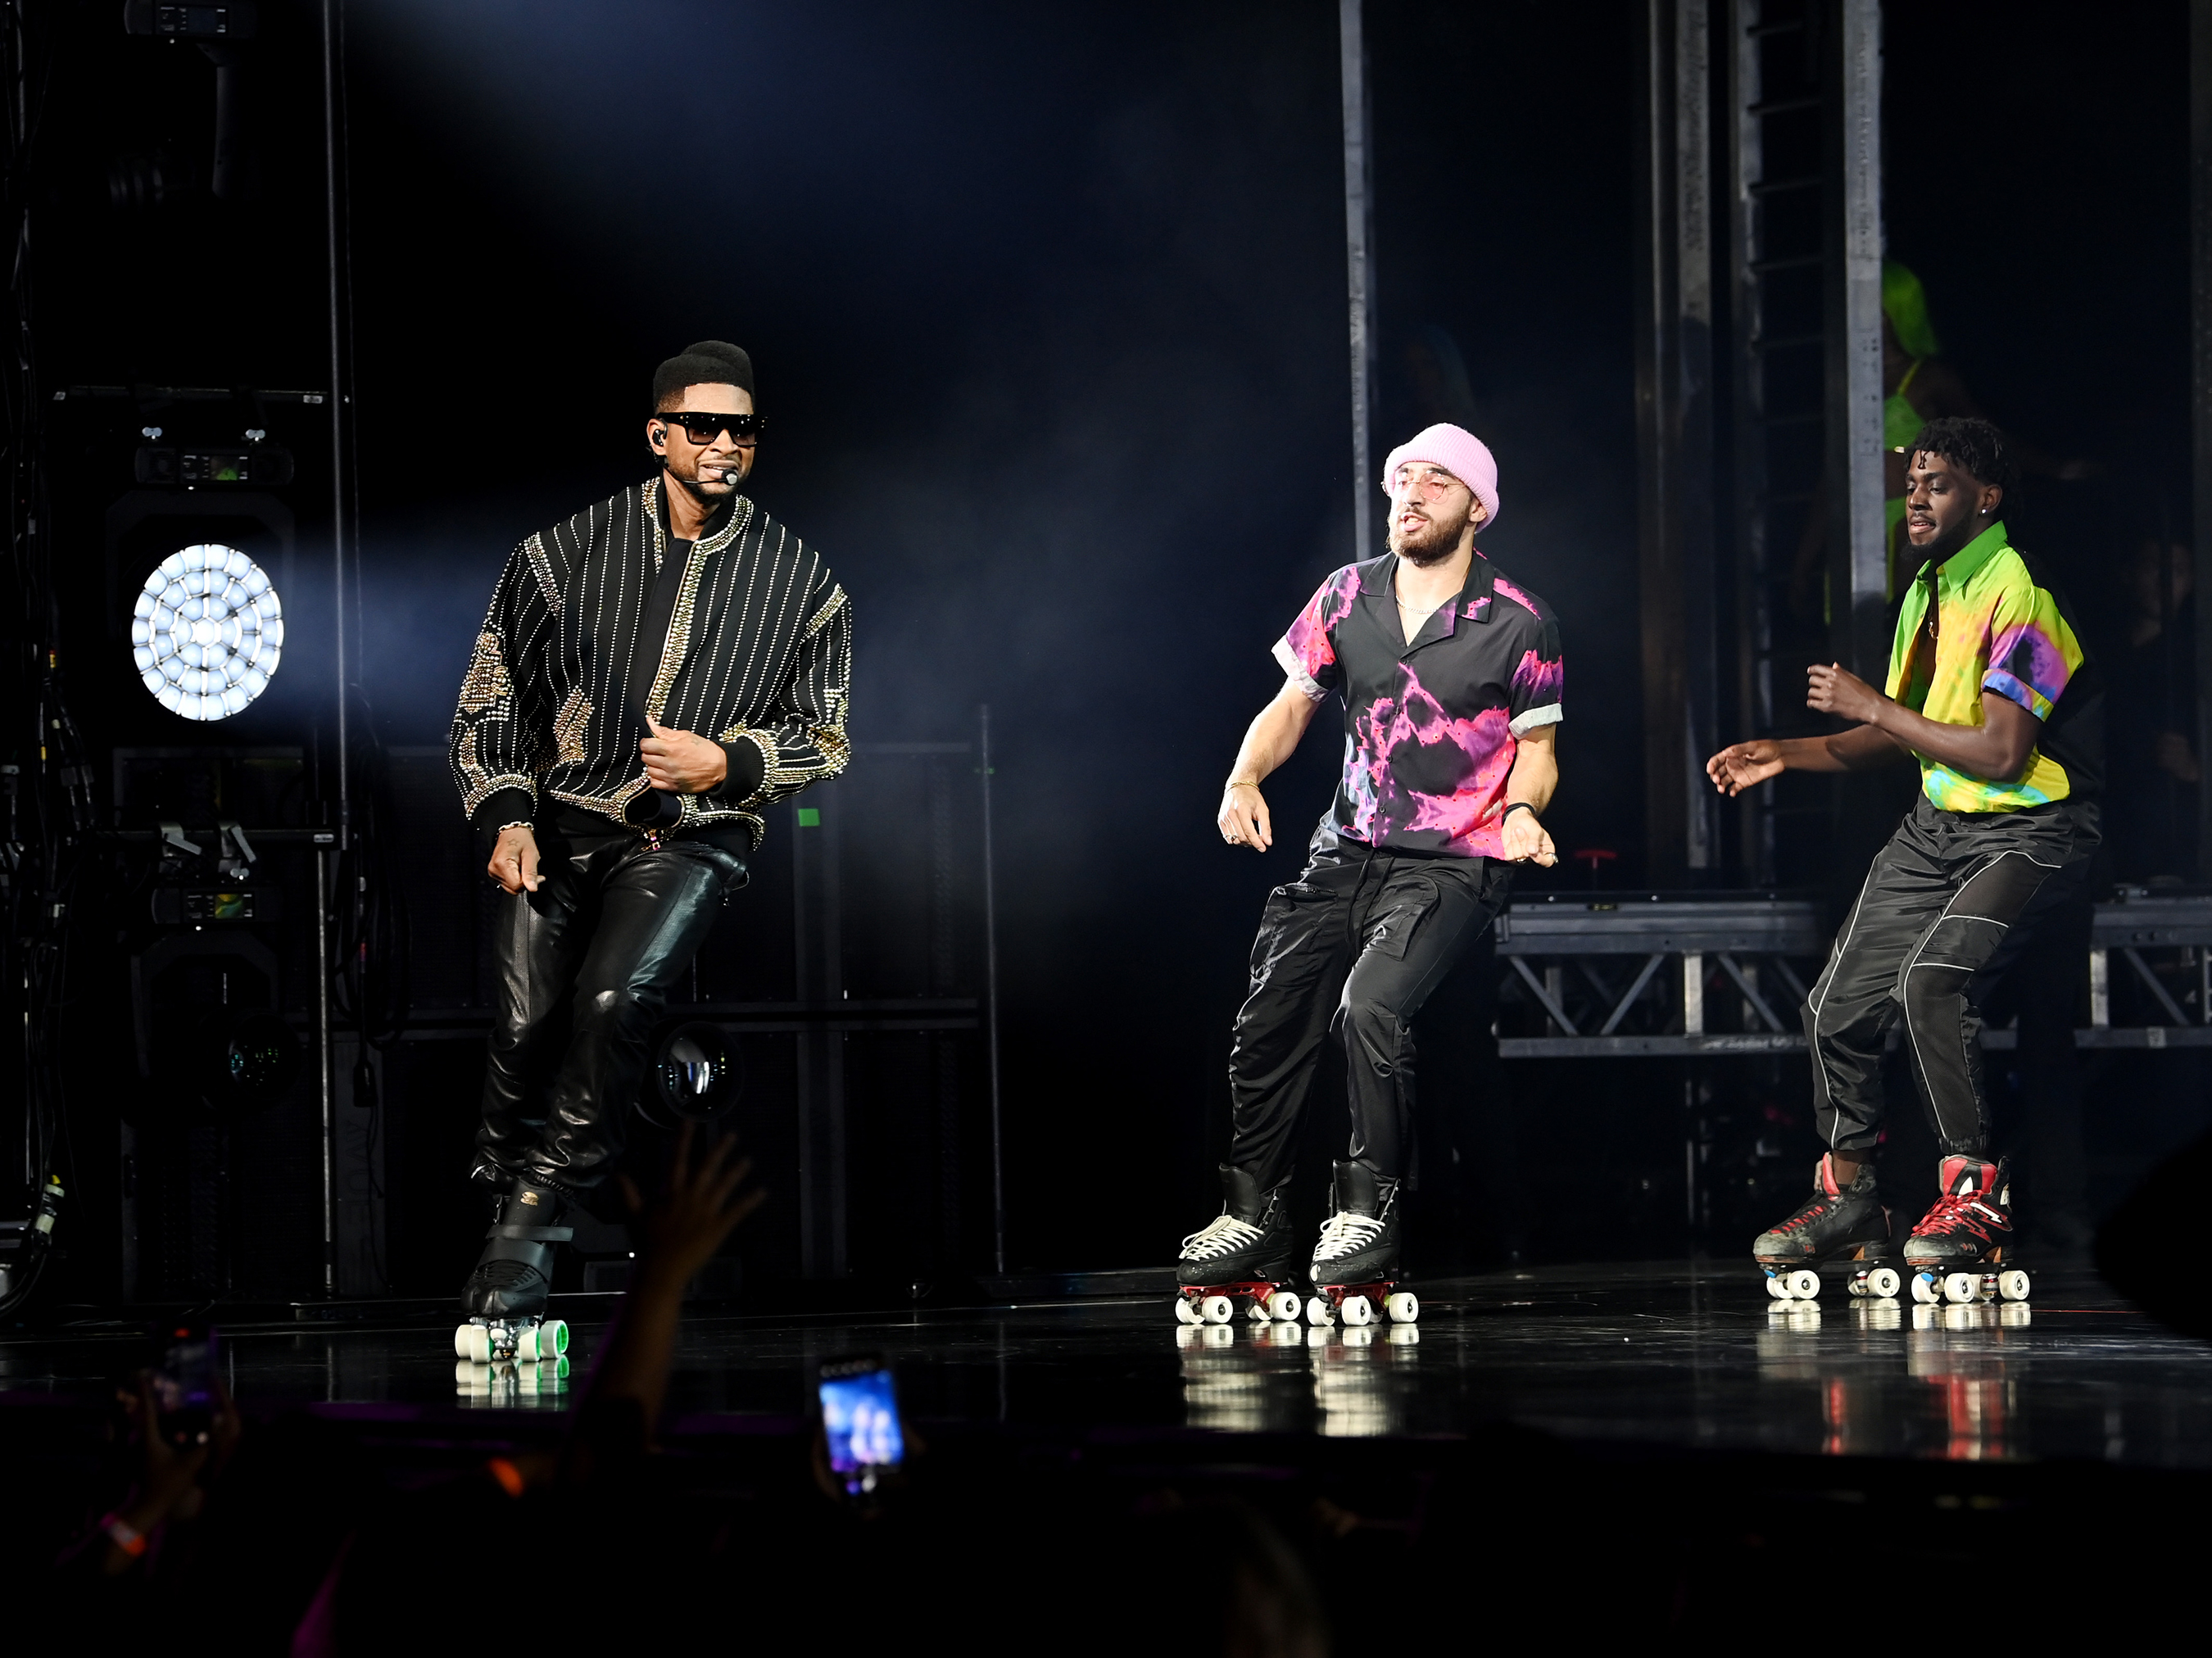 Usher opens Las Vegas residency at The Colosseum at Caesars Palace. Credit: Denise Truscello